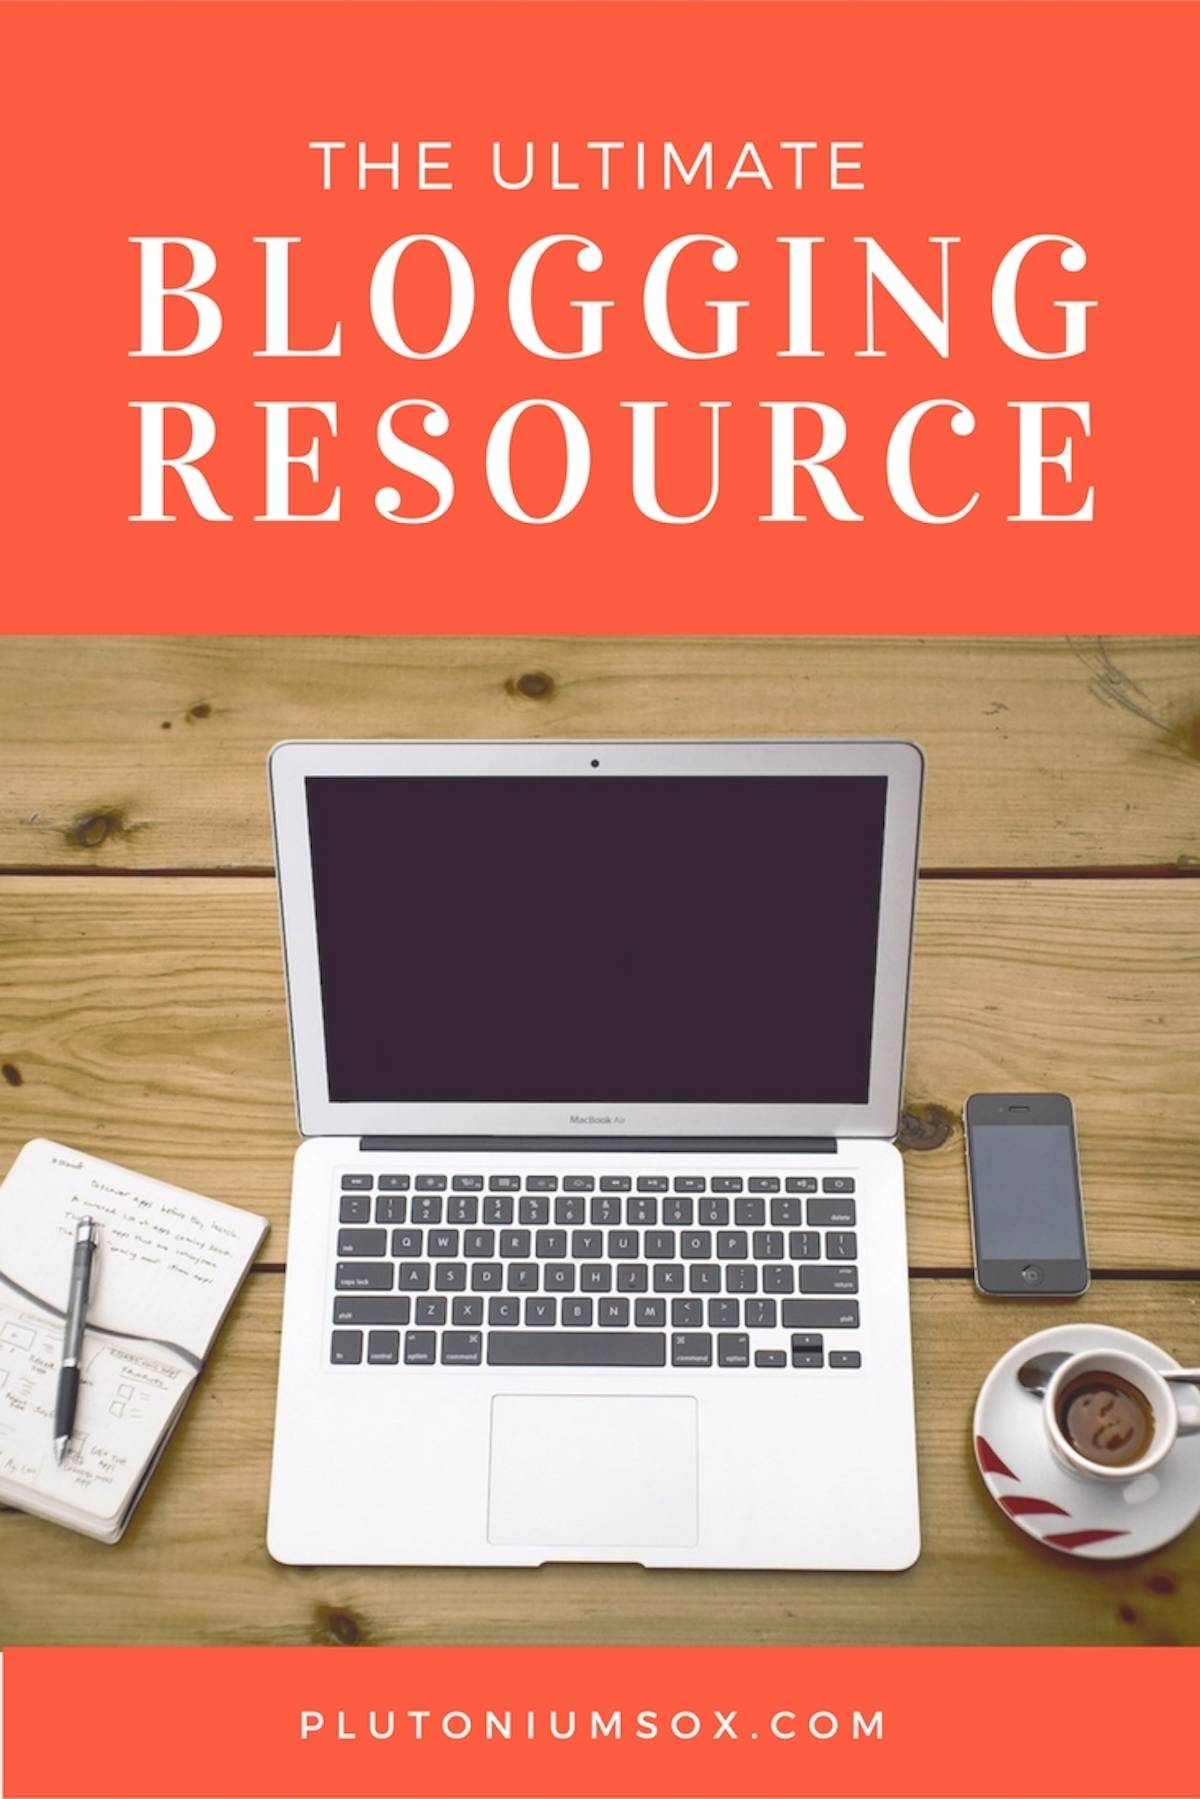 The ultimate blogging resource. A page full of links to advice from bloggers across the spectrum. Divided into topics so you can easily find whatever tips you need to get your blog as you want it right now.